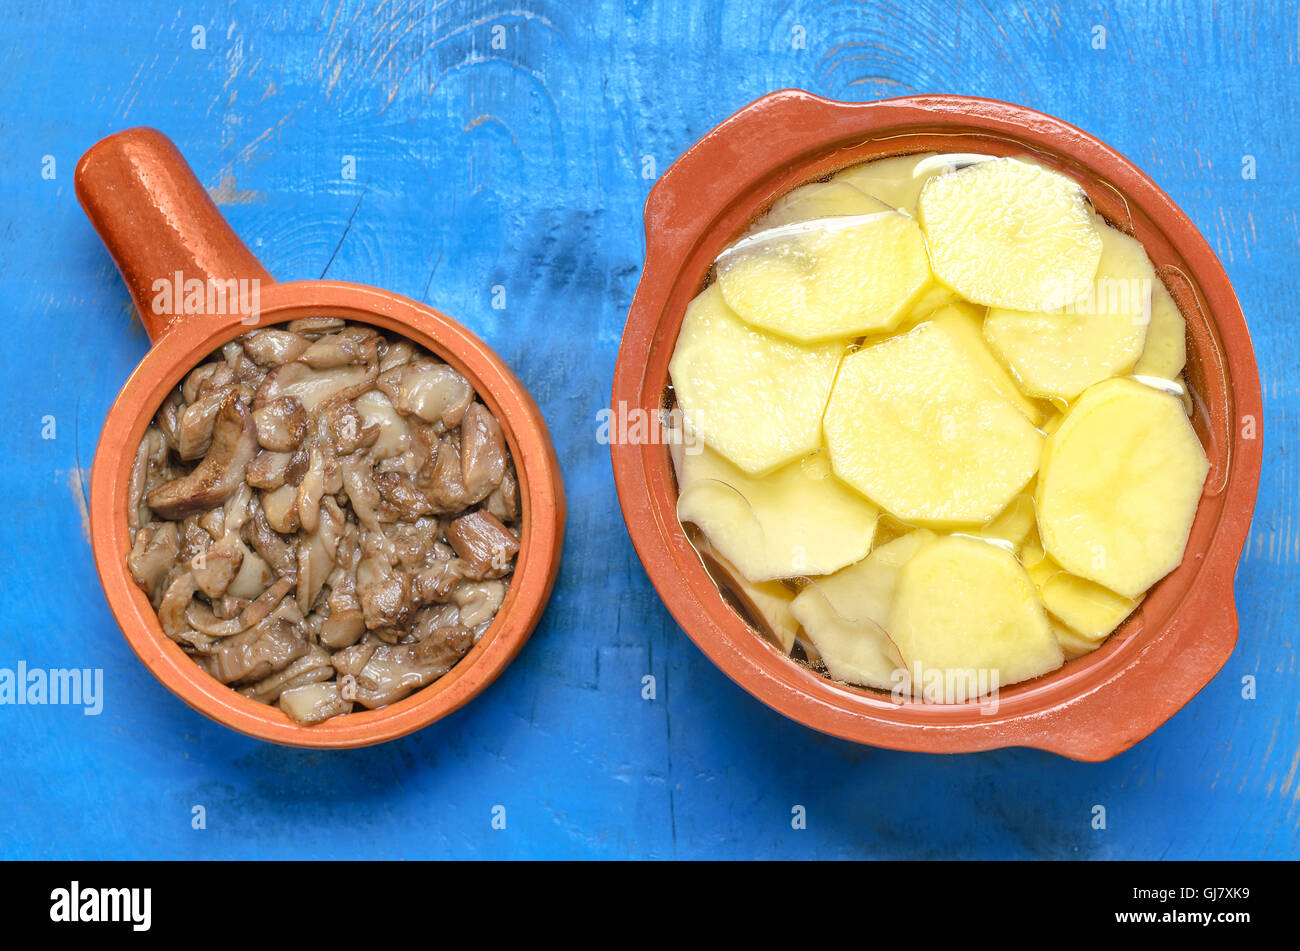 Fried mushrooms and raw chopped potatoes Stock Photo